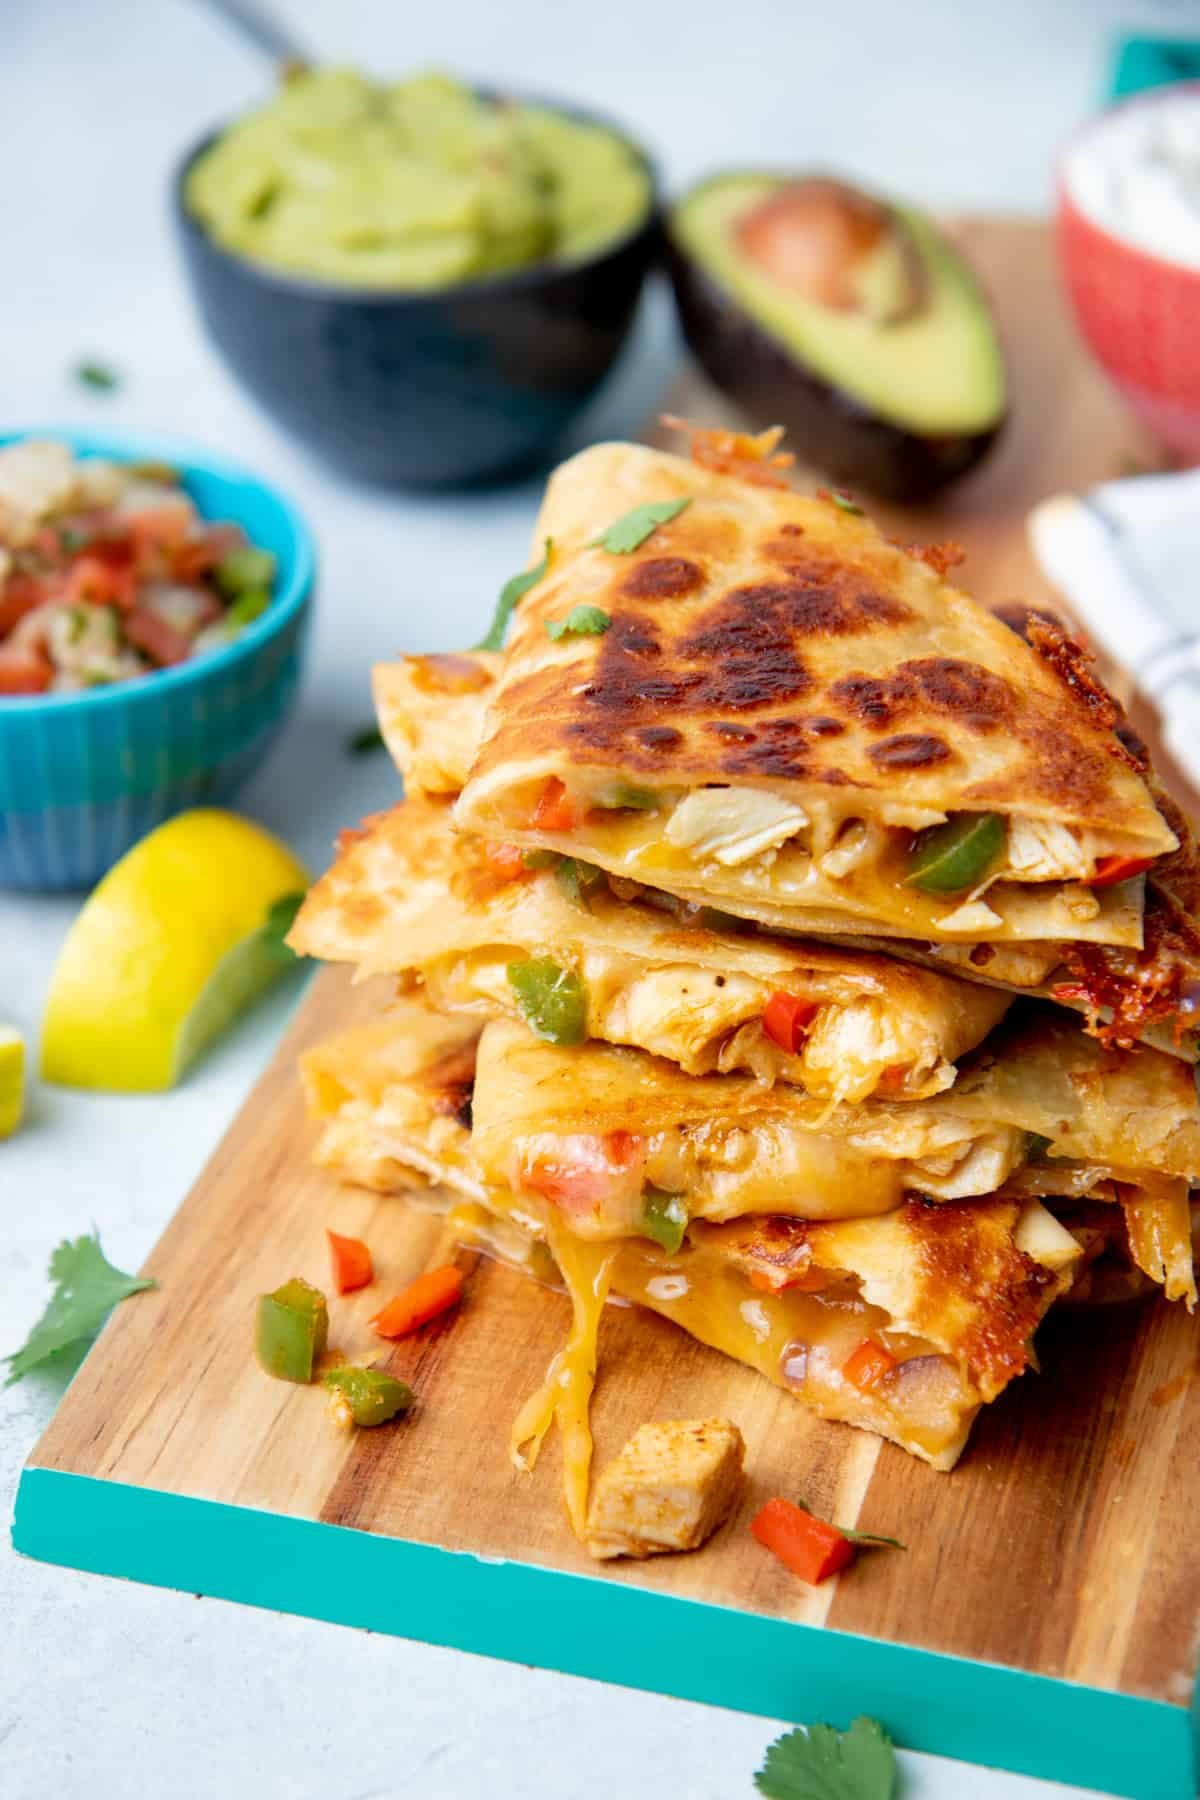 Chicken quesadillas rest on a wooden cutting board. A bowl of salsa and a bowl of guacamole sit behind them.